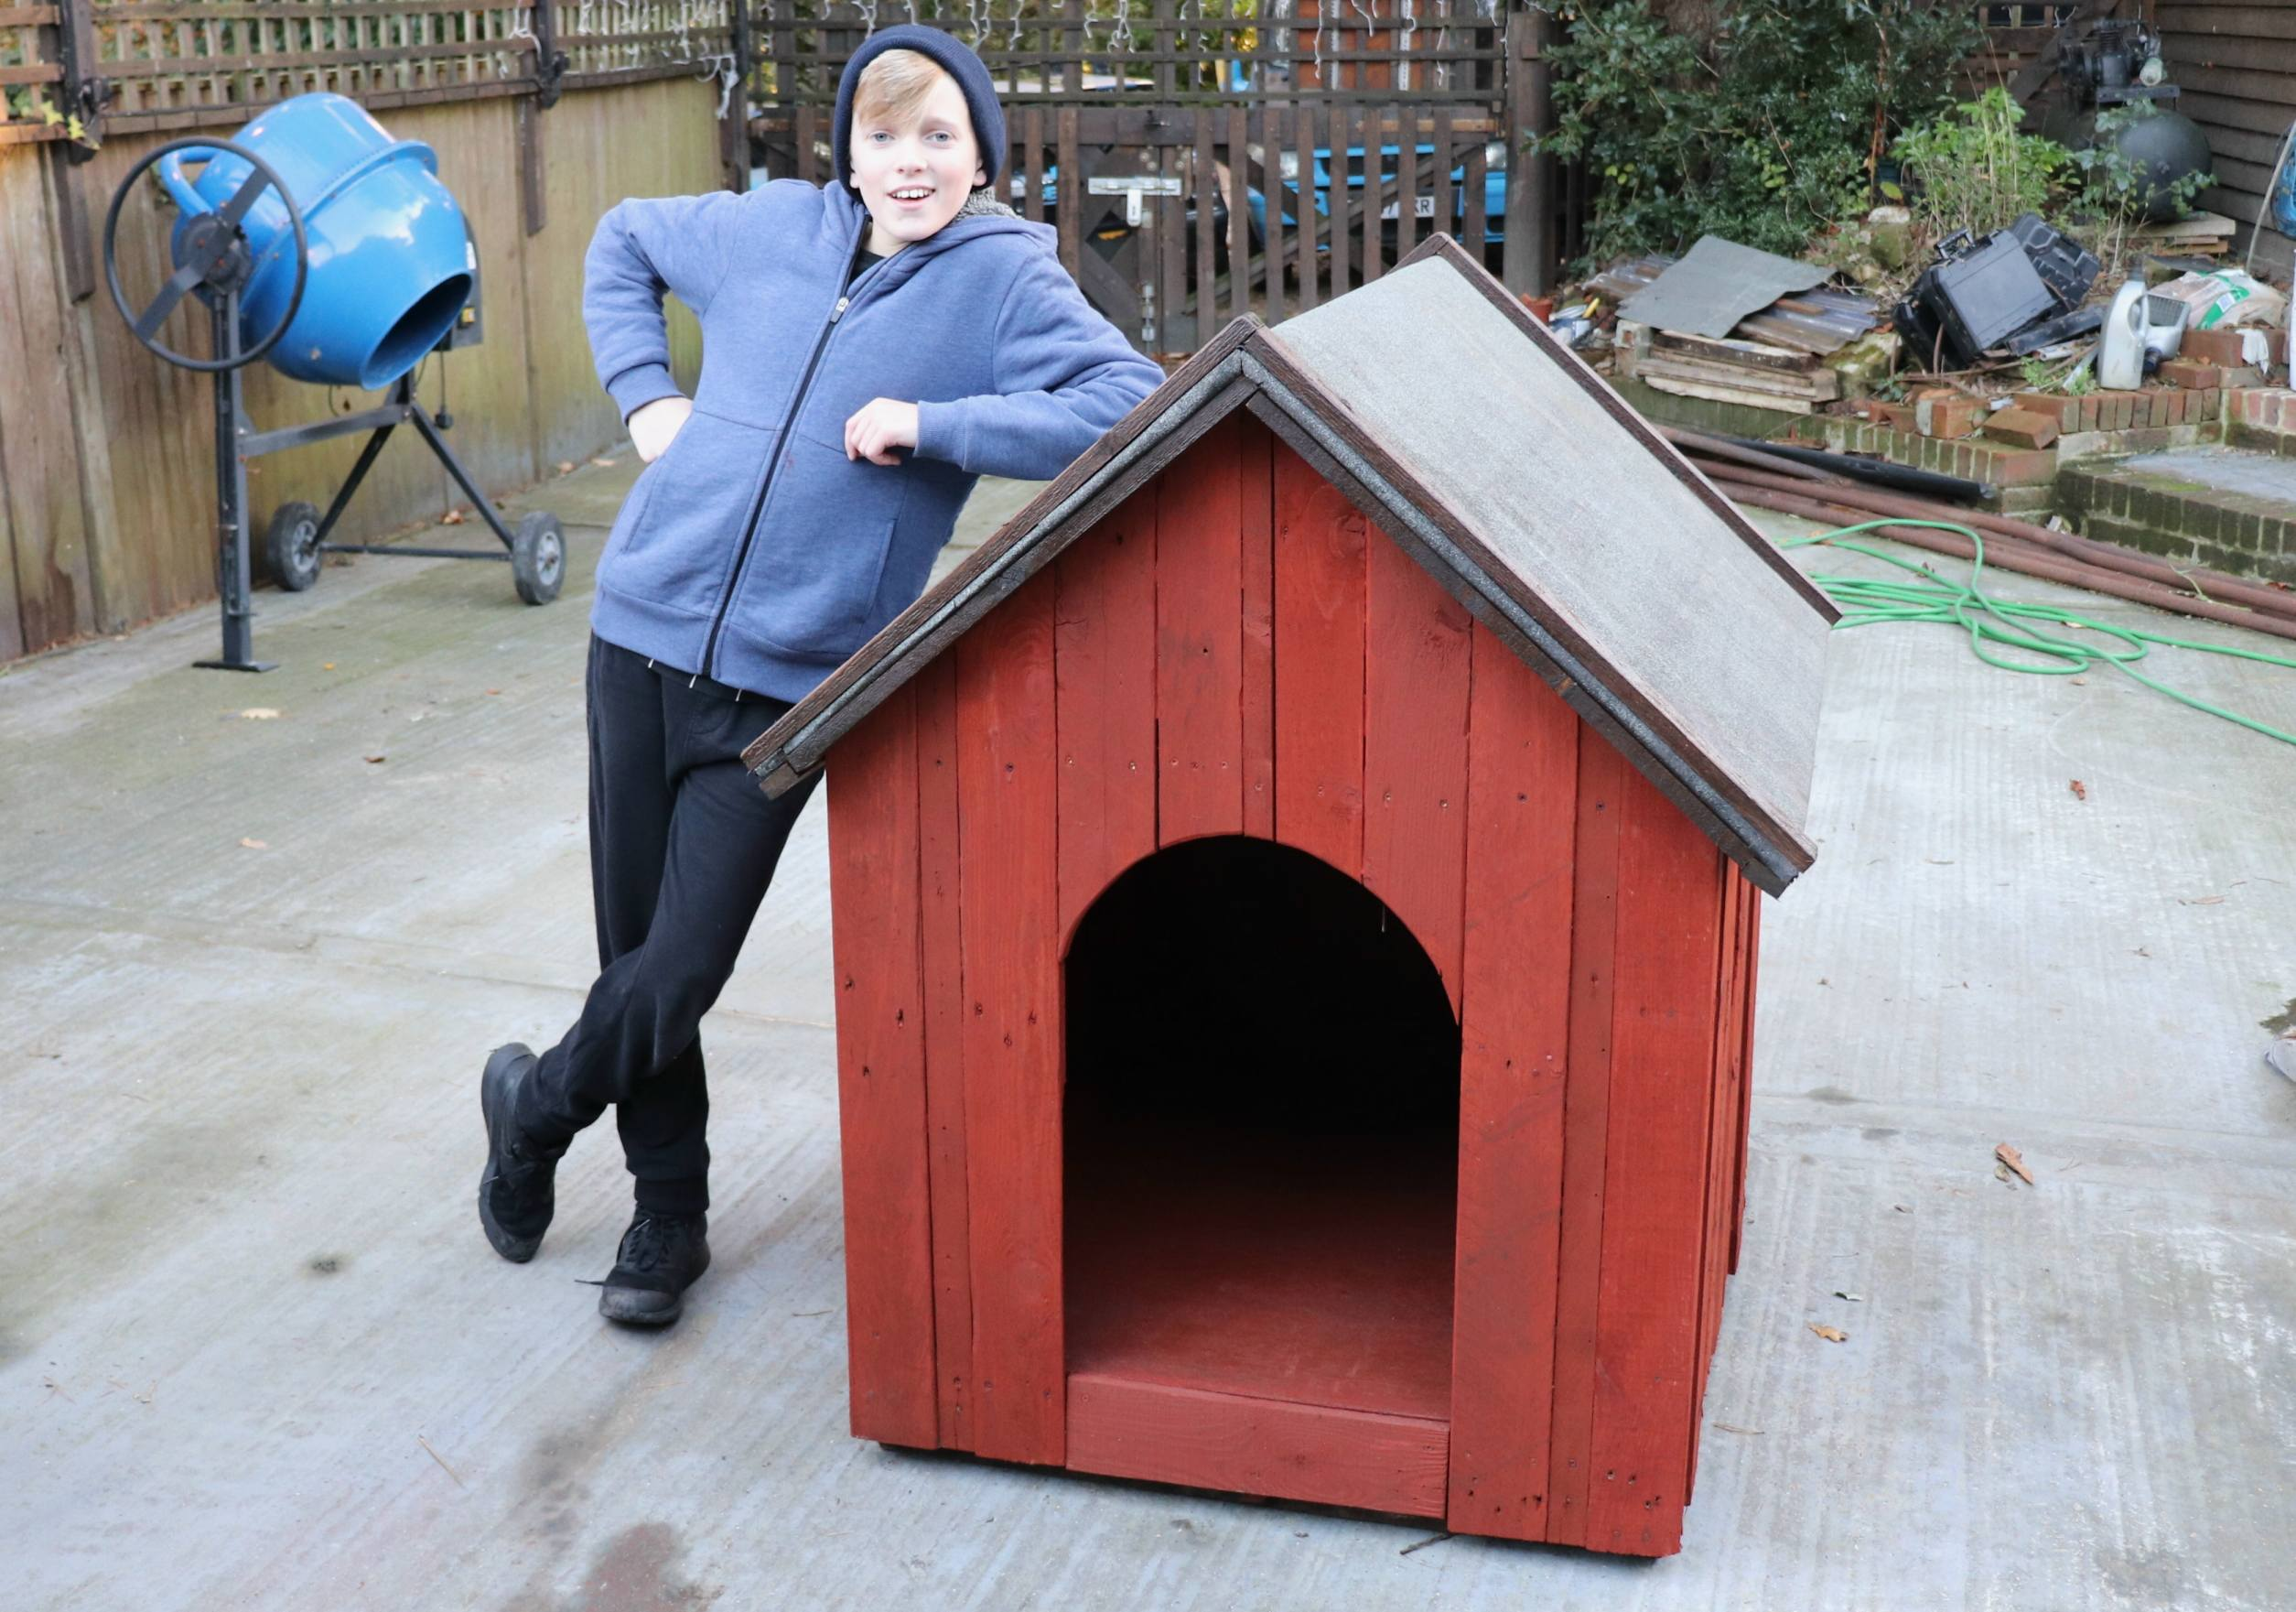 This is the kennel I built for my Sprocker Spaniel: Bella